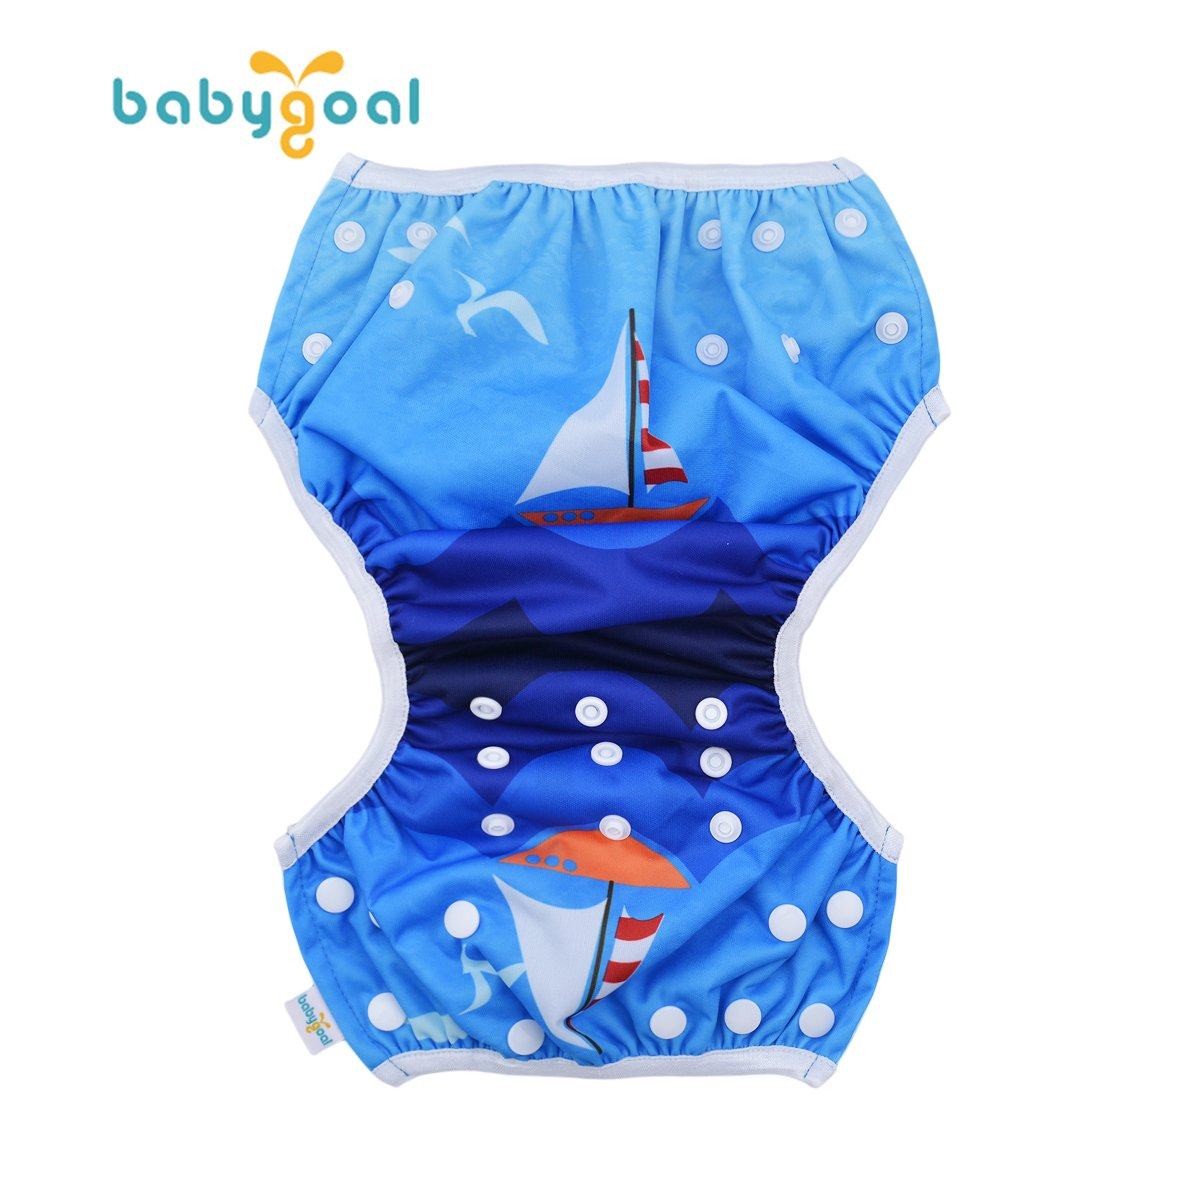 babygoal Reusable Swim Diaper One Size Adjustable and Washable Swim Underwear Fits 0-2 Years Babies and Swimming Lessons FSW11-CA Strawberry